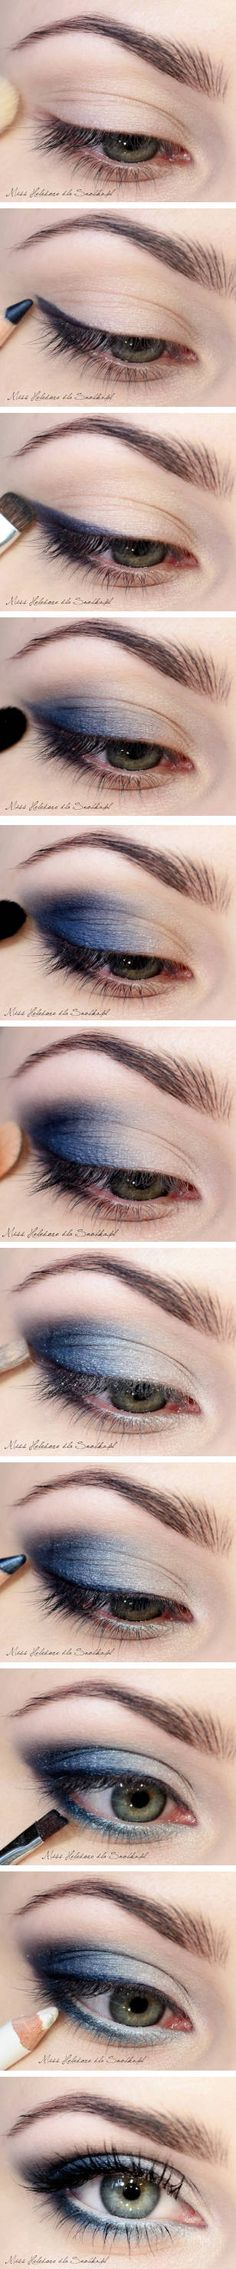 smoky eye with blue #makeup #eyeshadow